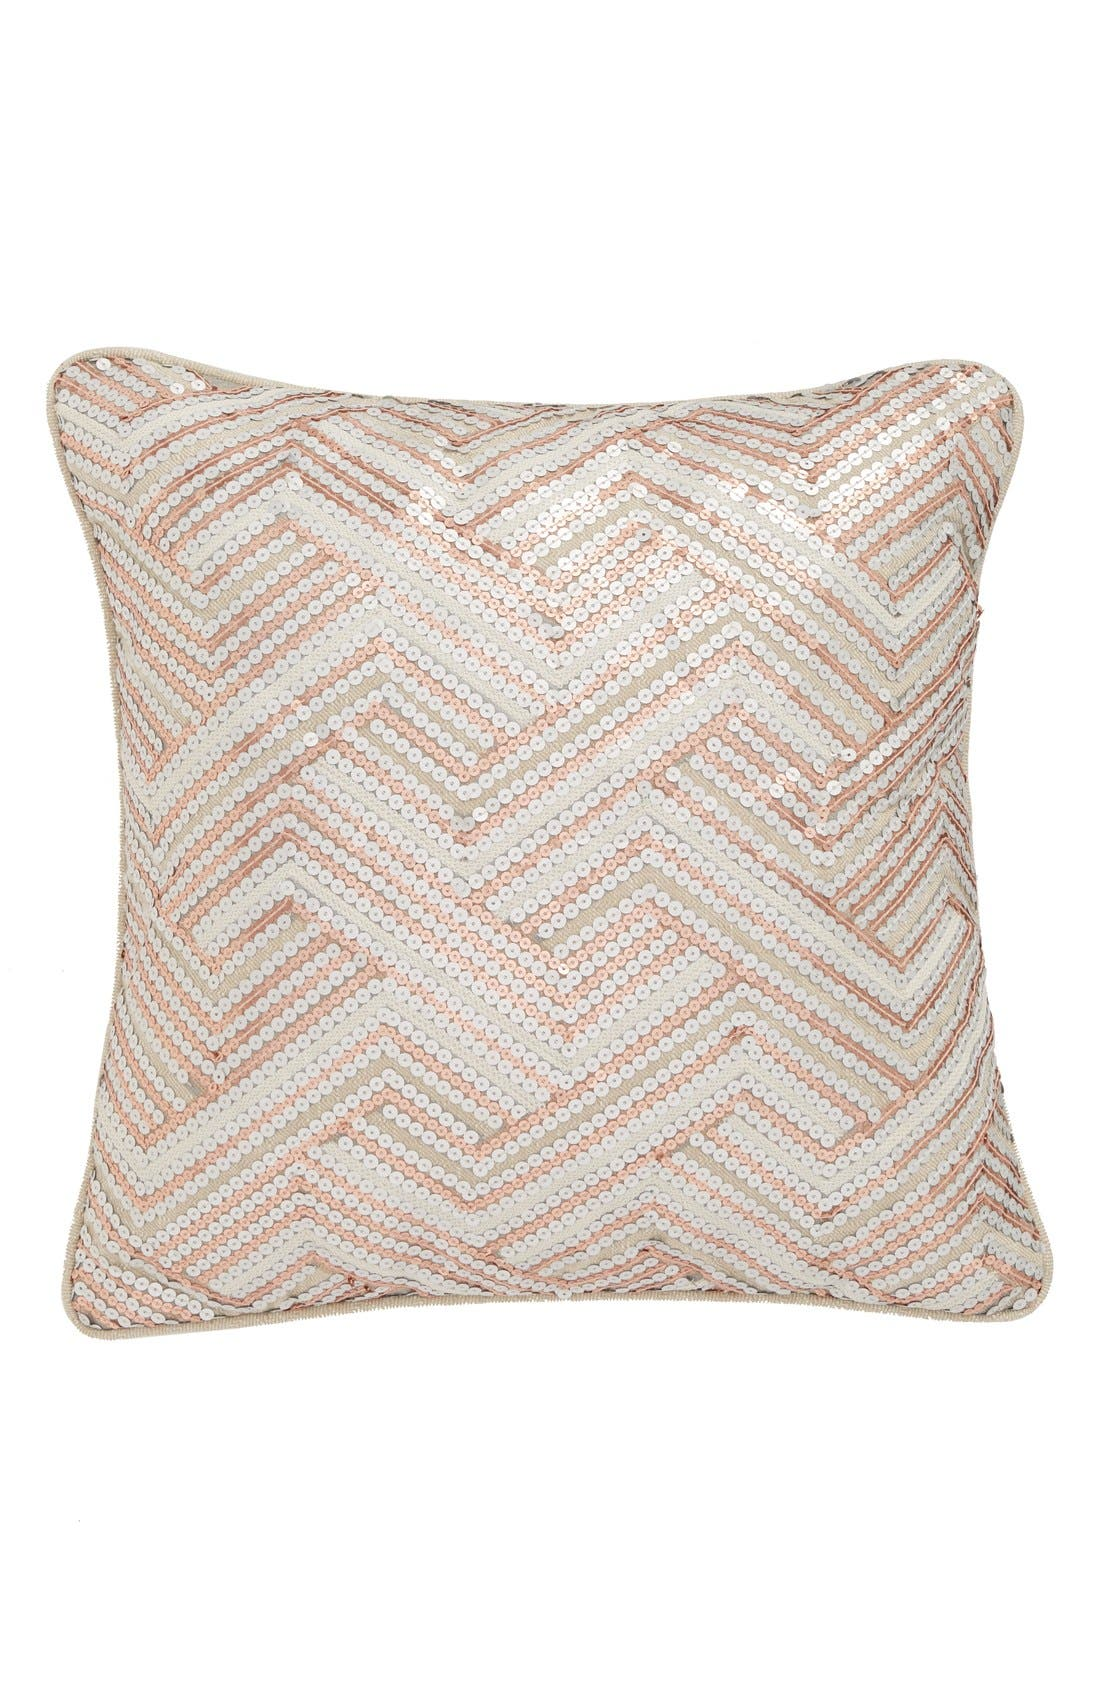 'Lona' Sequin Accent Pillow,                         Main,                         color, Pink/ White/ Silver